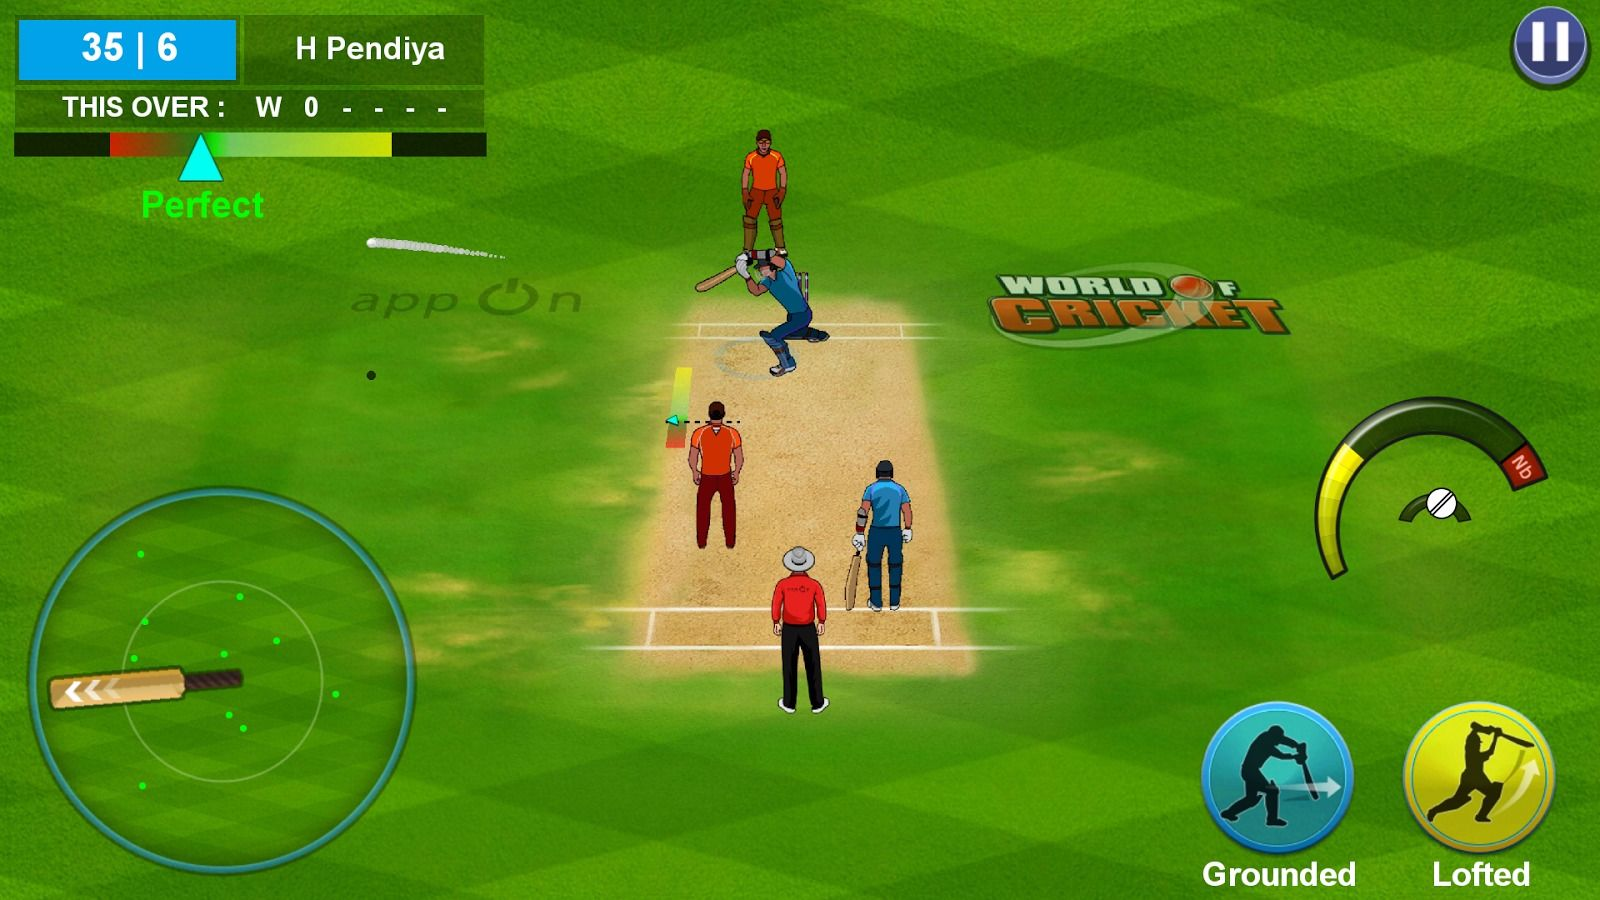 Mobile Cricket Game | Cricket Games Download for Mobile and PC